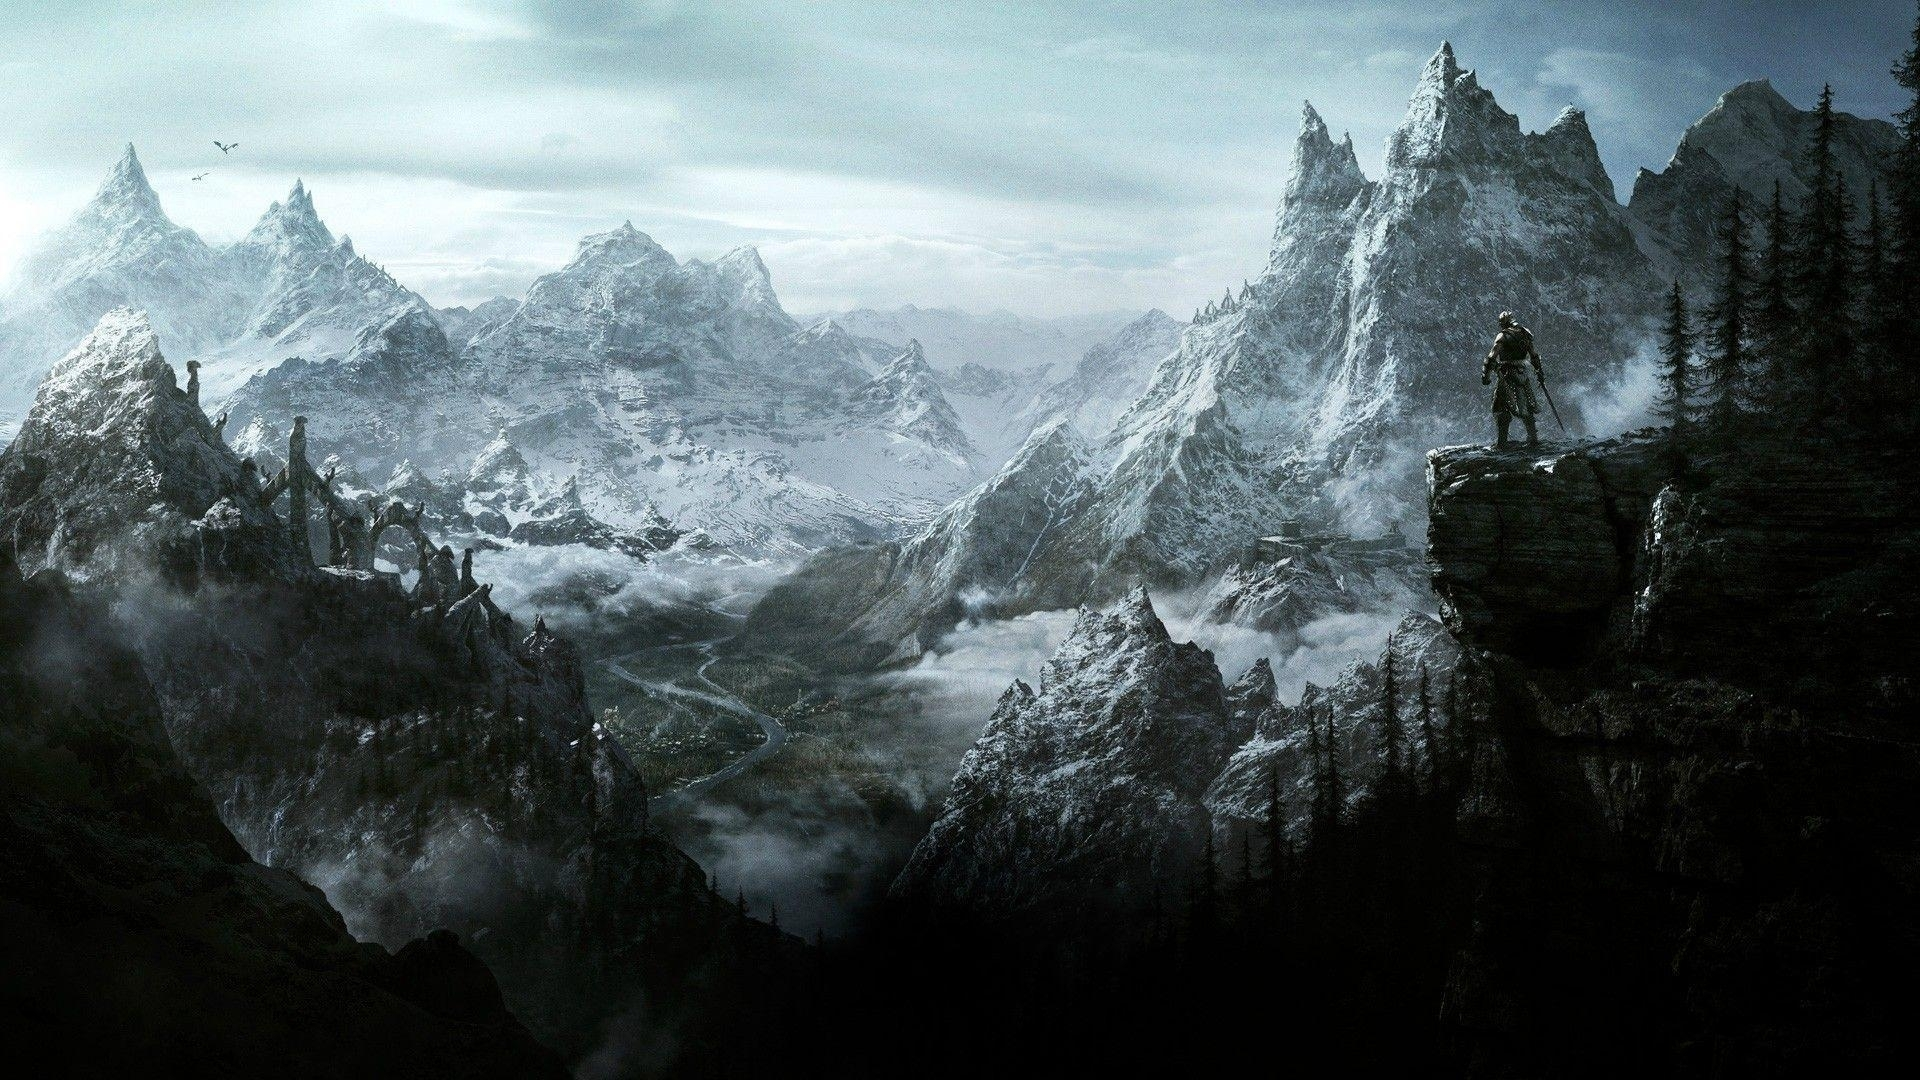 skyrim wallpapers 1920x1080 - wallpaper cave